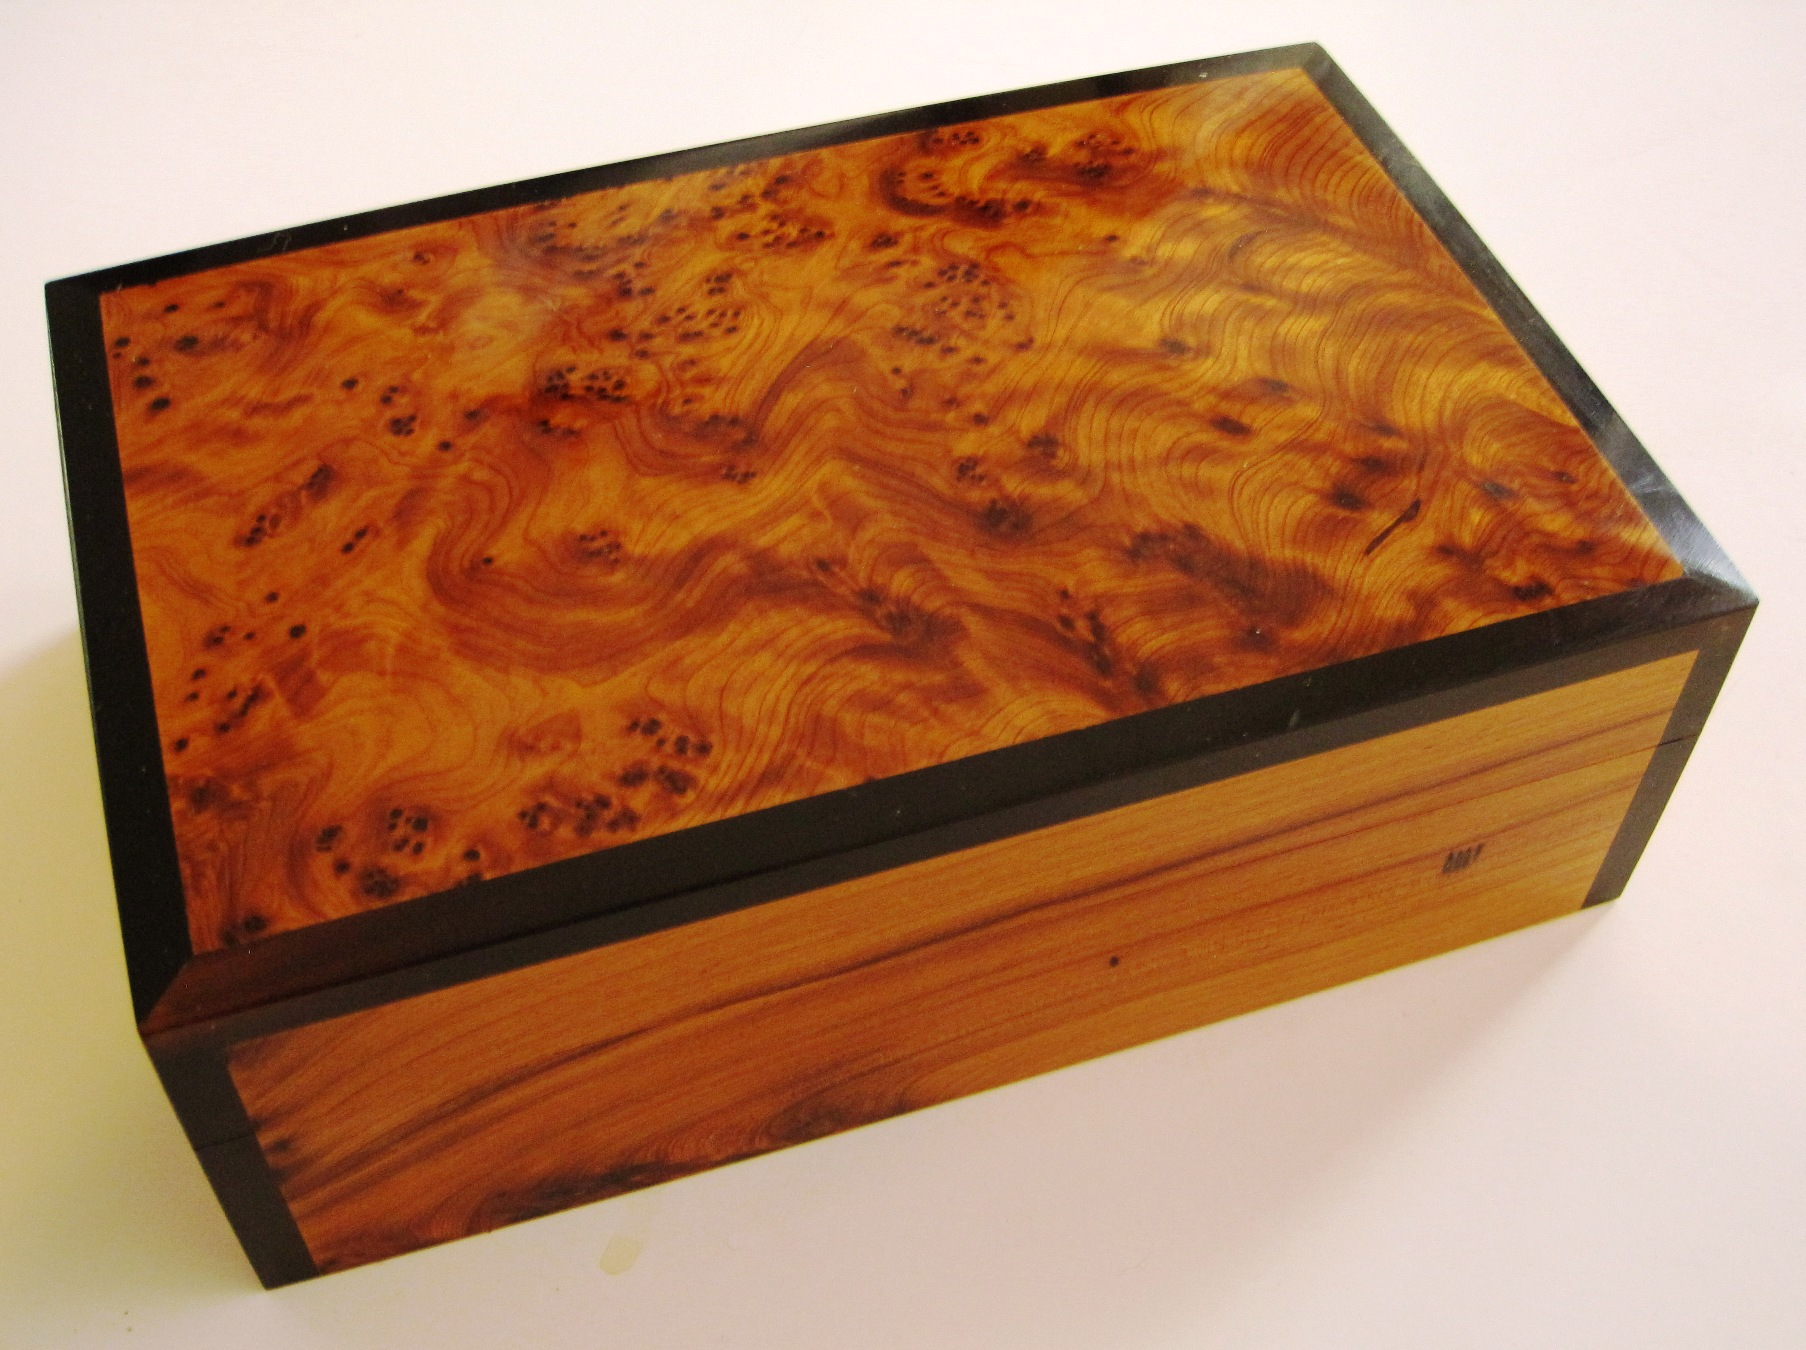 Handcrafted wood jewelry boxes - An Original Gift For Him Or Her This Handcrafted Moroccan Thuya Wood Box Is A Desk Accessory Jewelry Box Change Holder And More